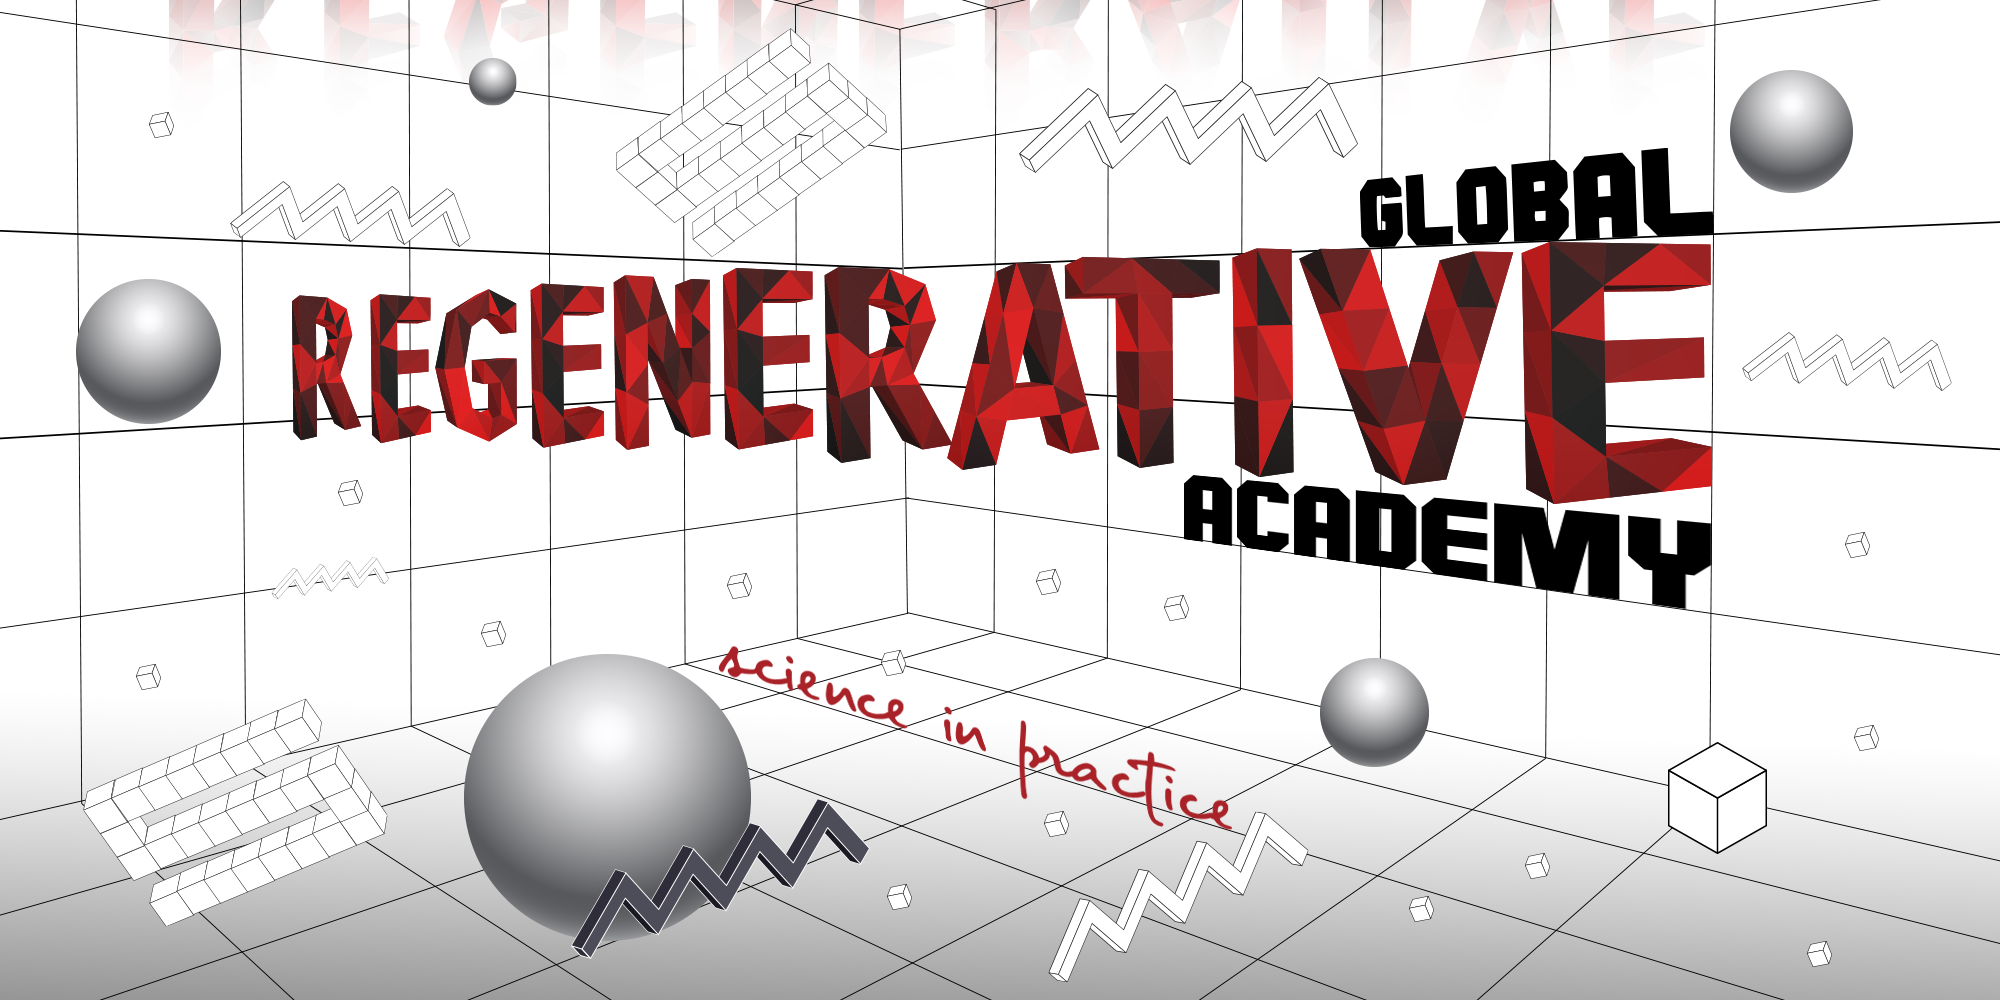 3 dimensional image about global regenerative academy